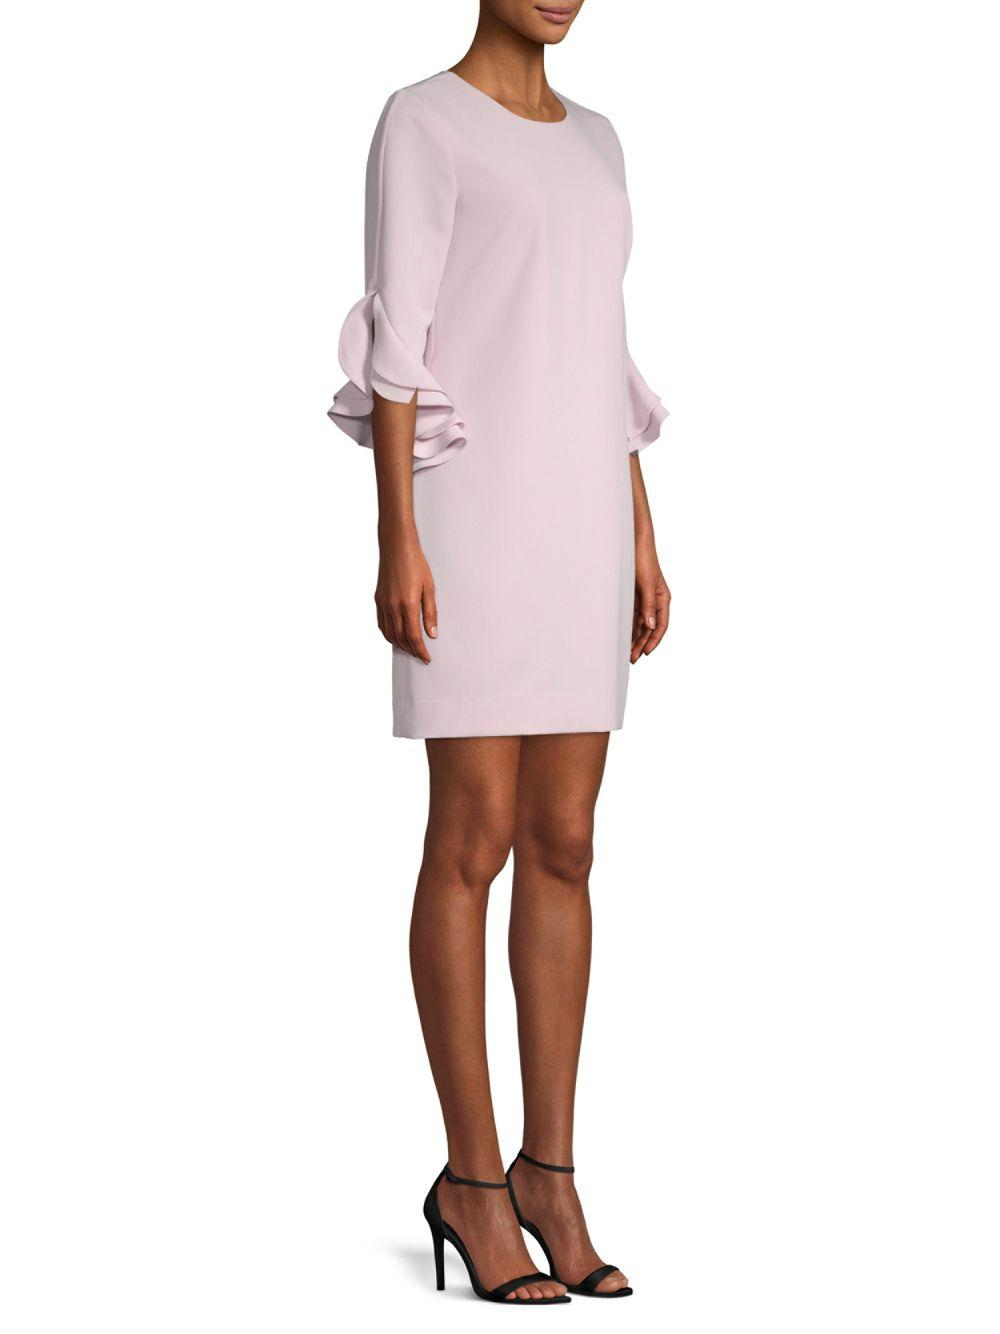 9c84b1a6be4 MILLY Fernanda Ruffle Dress in Pink - Save 24% - Lyst